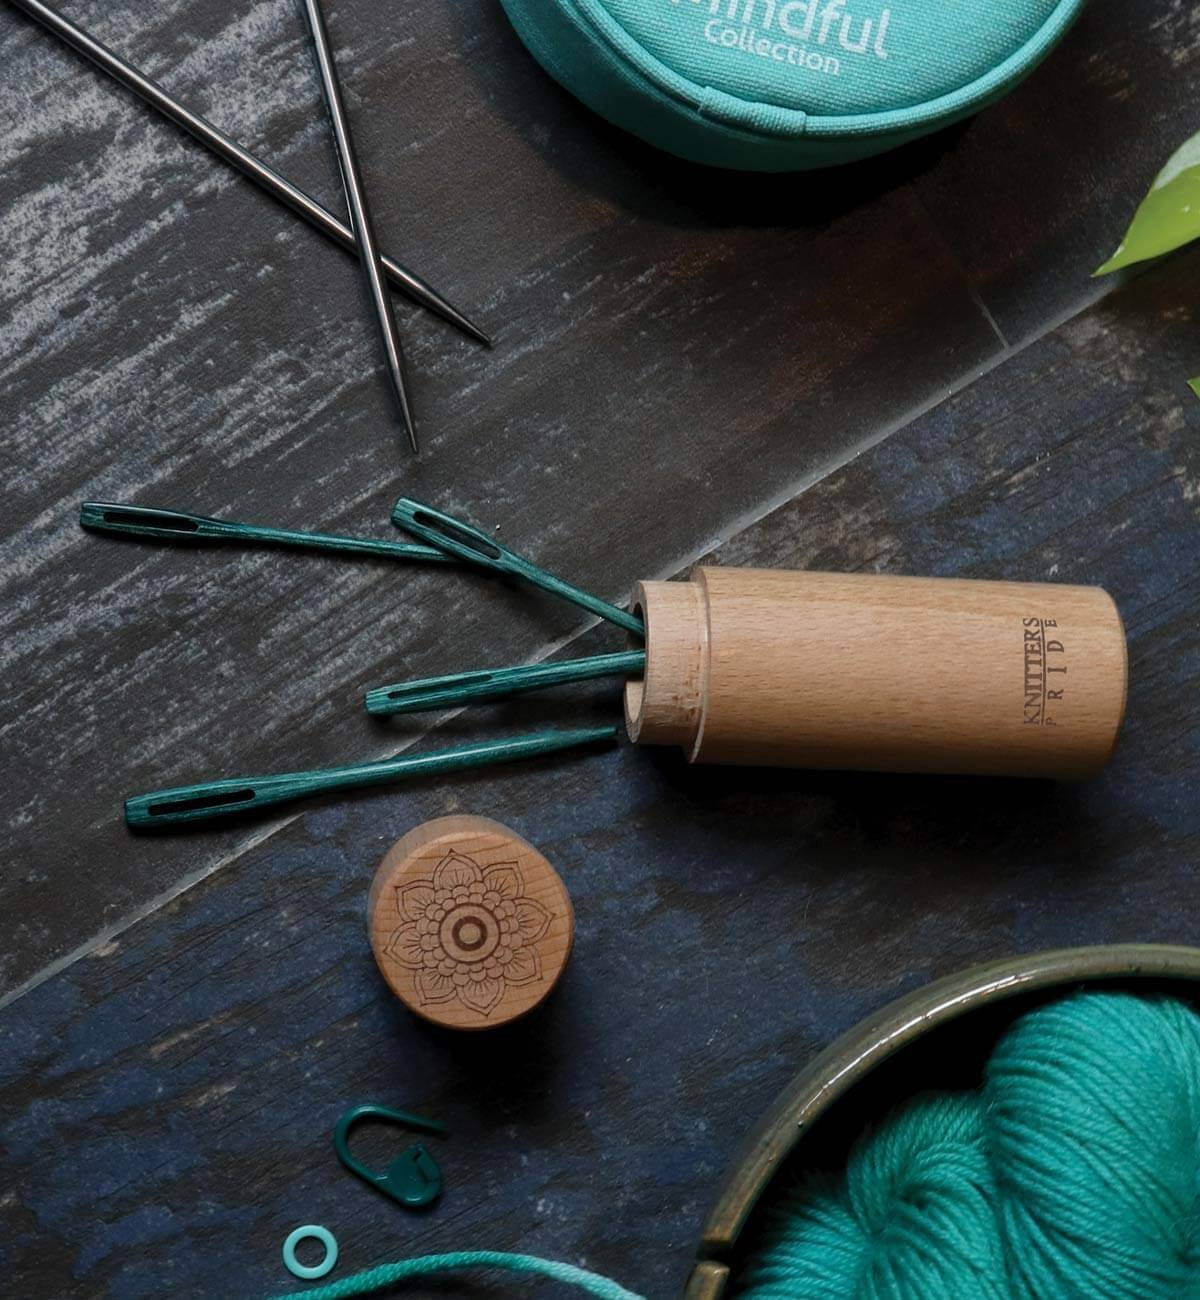 Mindful Collection Wood Darning Needles